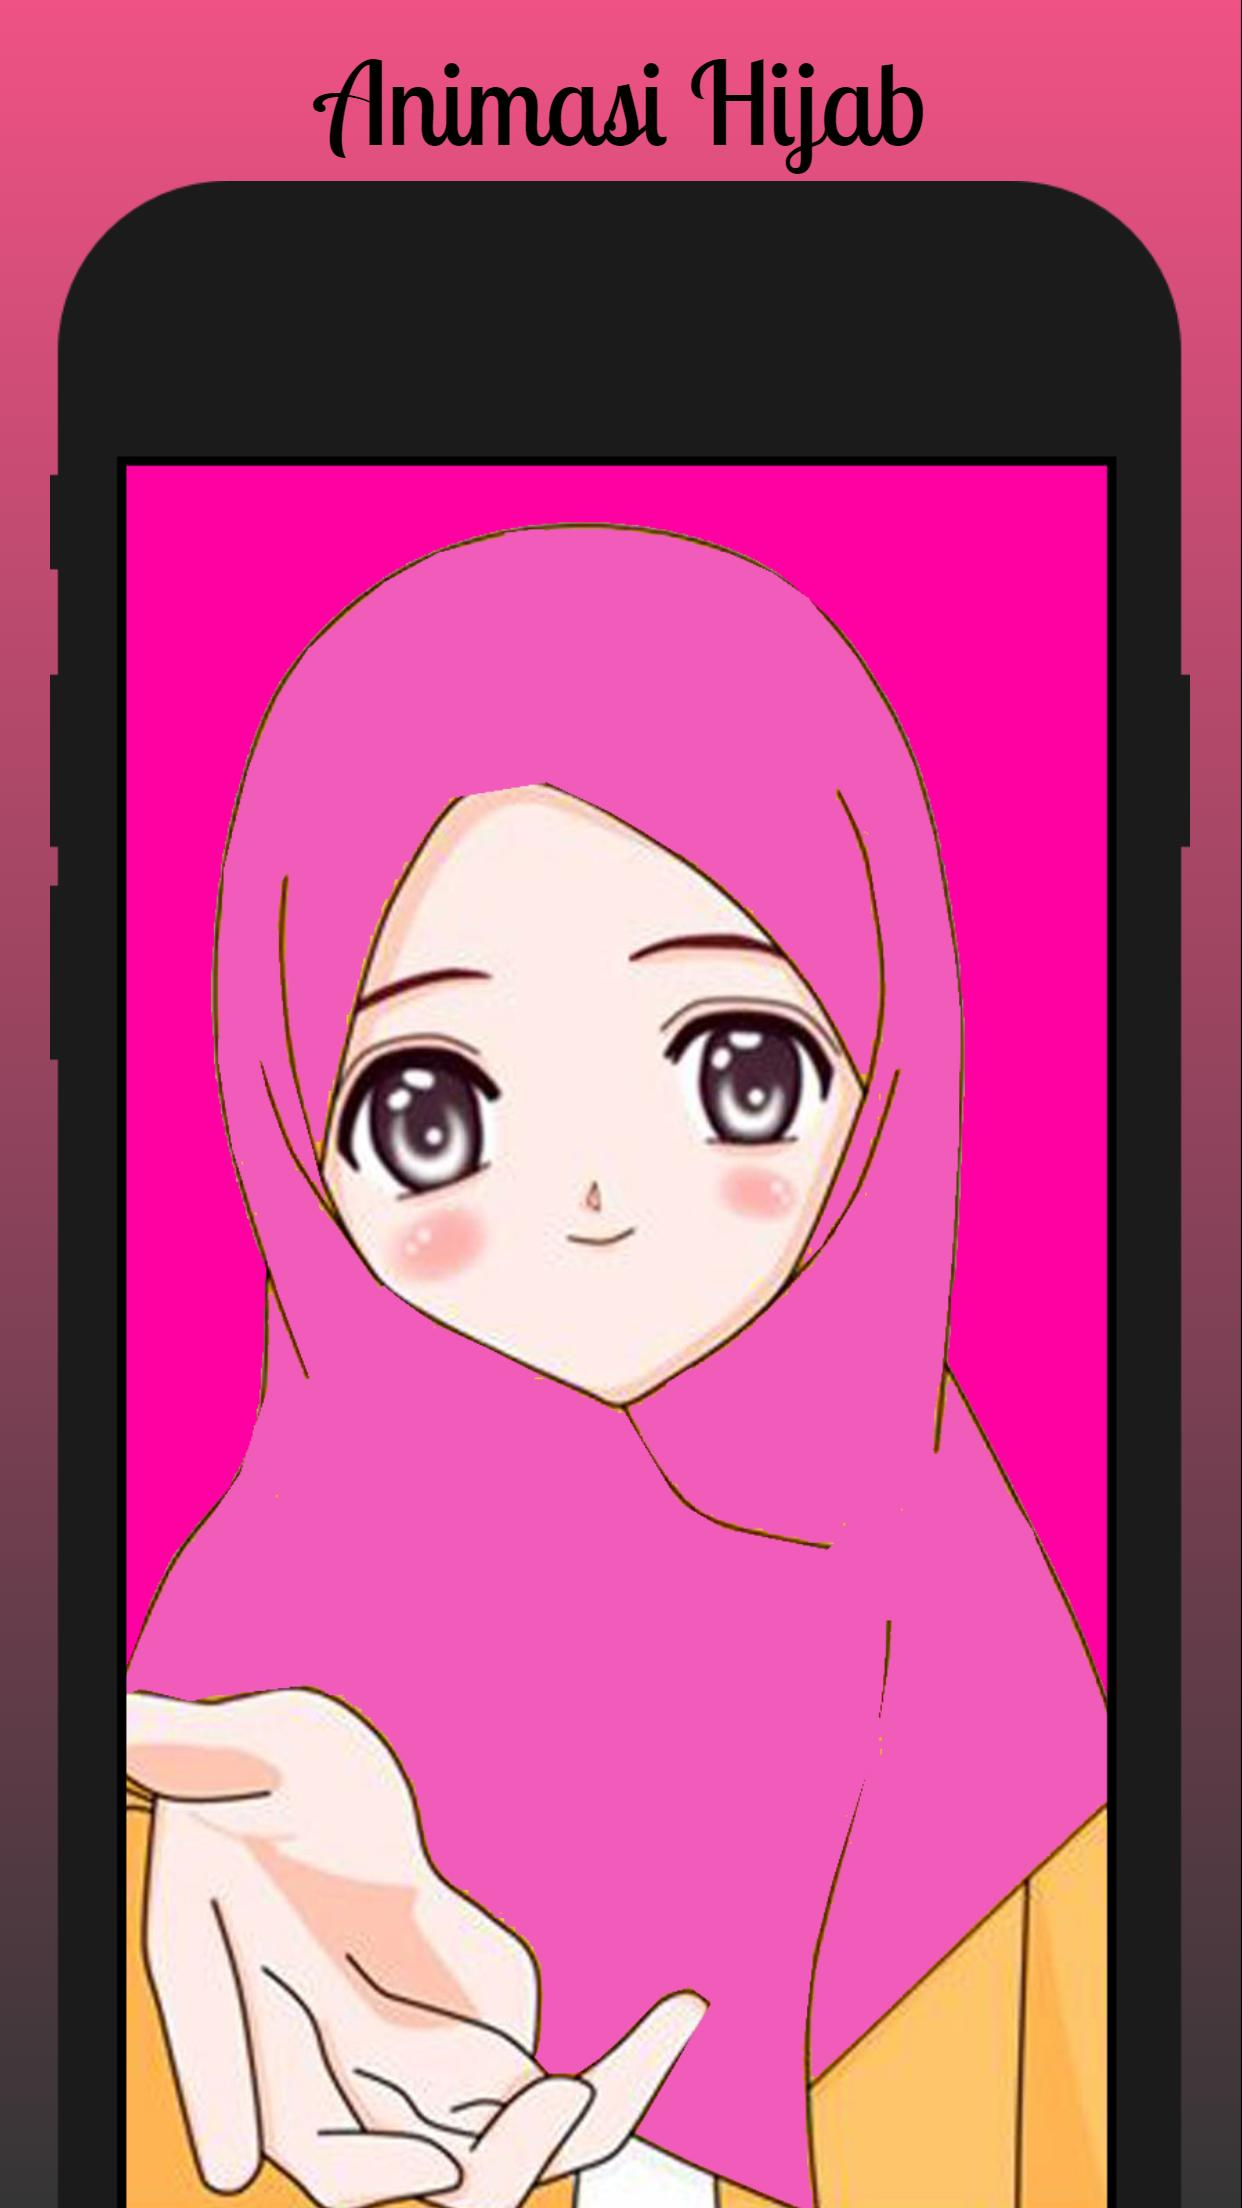 Animasi Hijab Wallpaper For Android APK Download